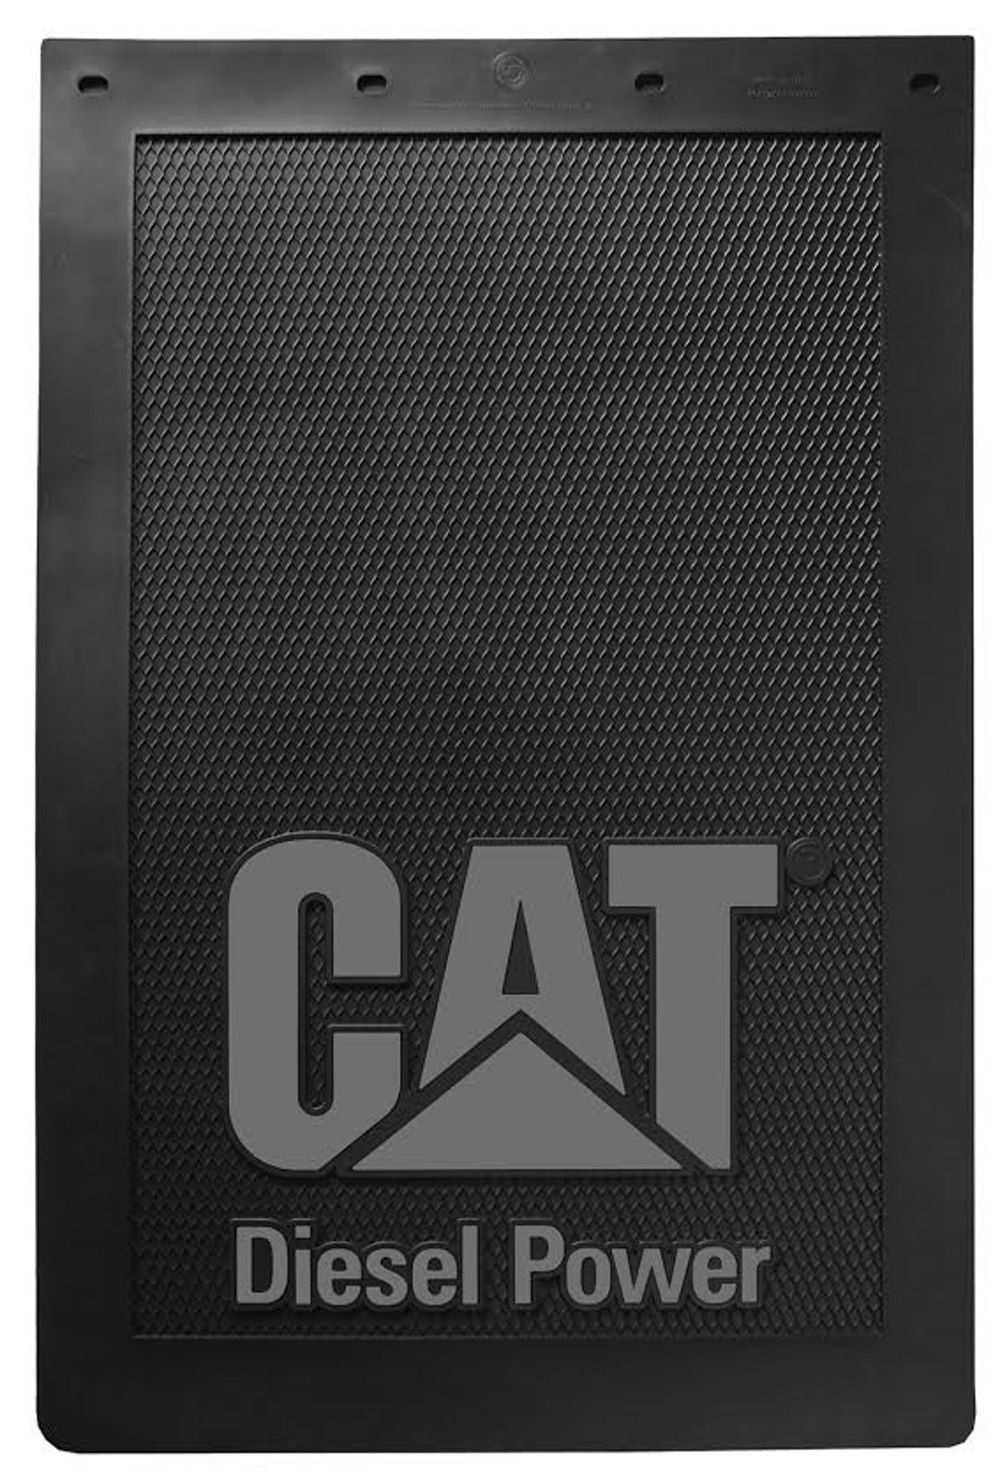 Semi Truck Mud Flaps >> Caterpillar Cat Diesel Power 24 X 36 Black Gray Semi Truck Mud Flaps Splash Guards Set